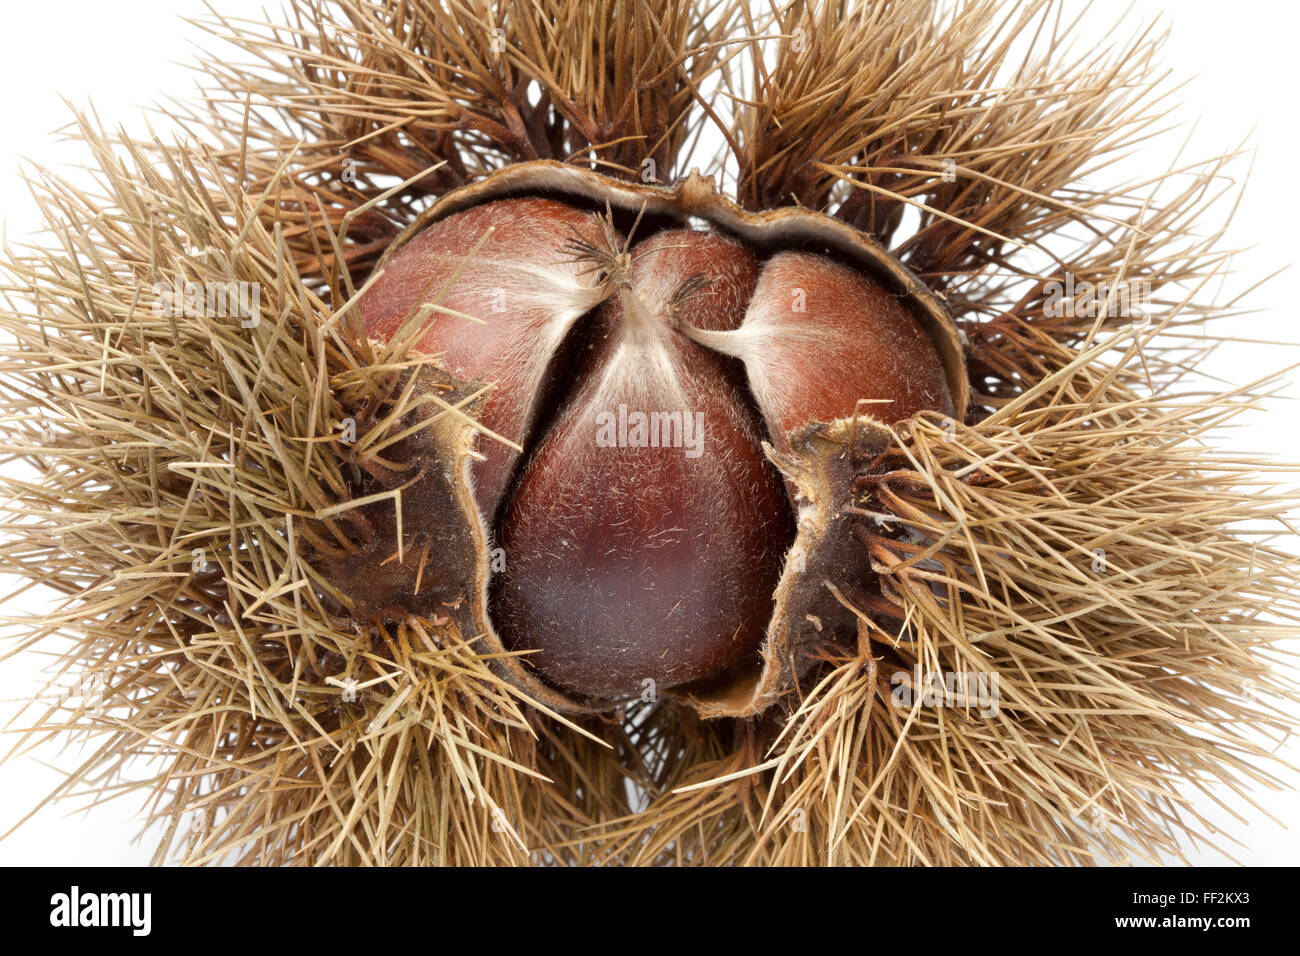 Sweet chestnut in spiked pod close up on white background - Stock Image